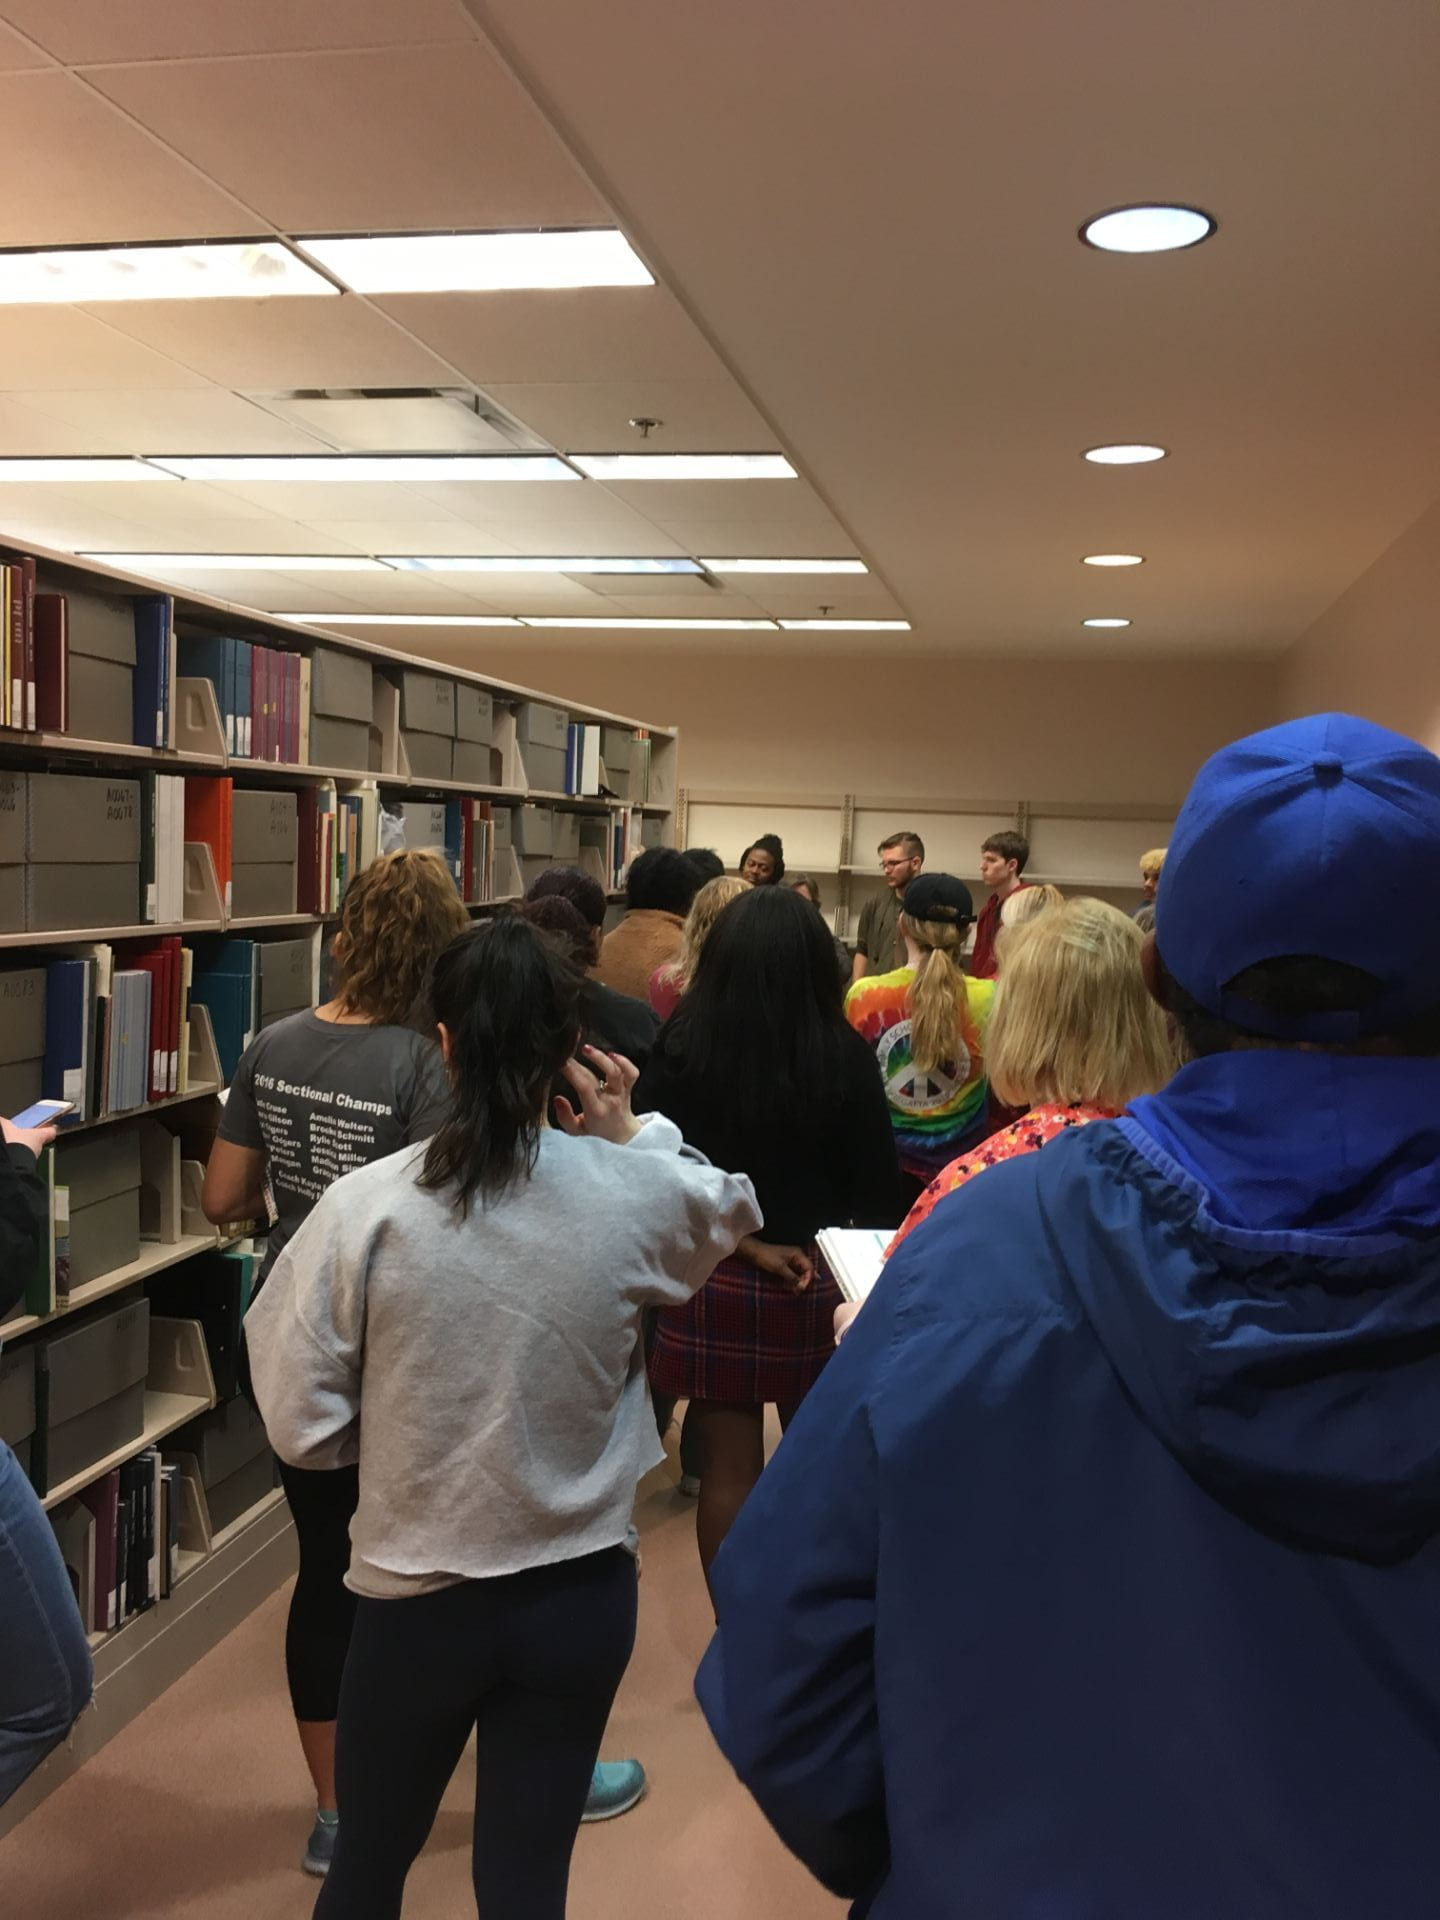 Students walk through the university's archives.